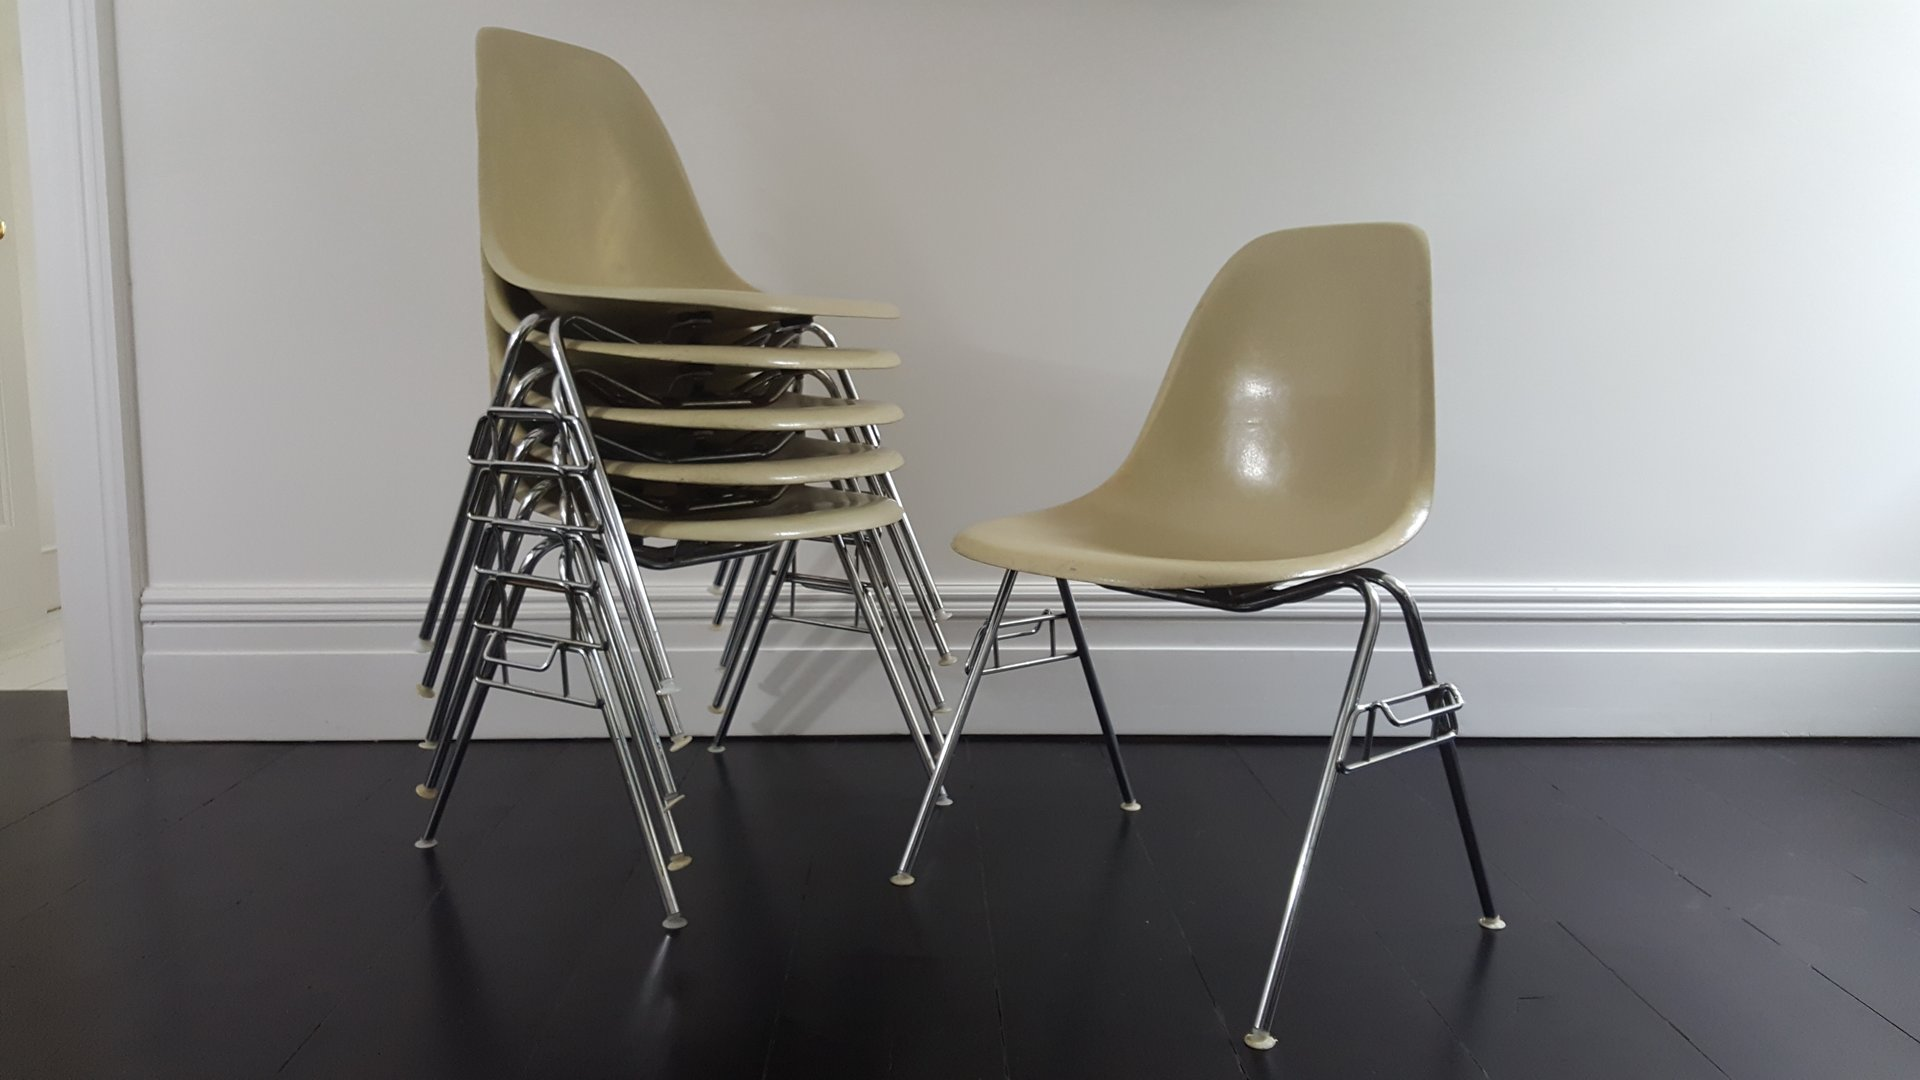 vintage dss fiberglass shell chair by charles ray eames. Black Bedroom Furniture Sets. Home Design Ideas